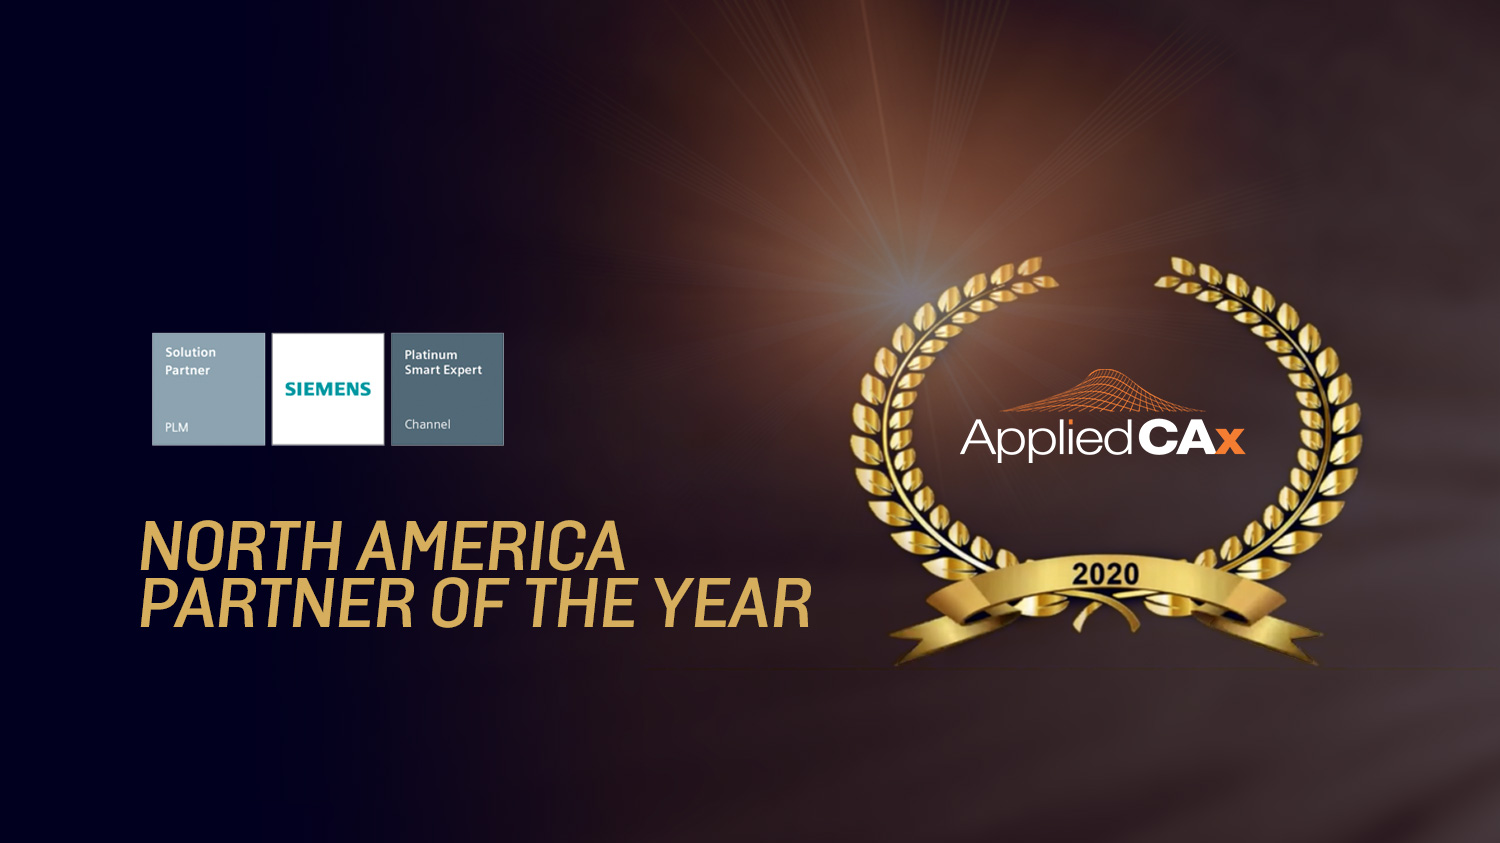 applied cax 2020 siemens partner of the year